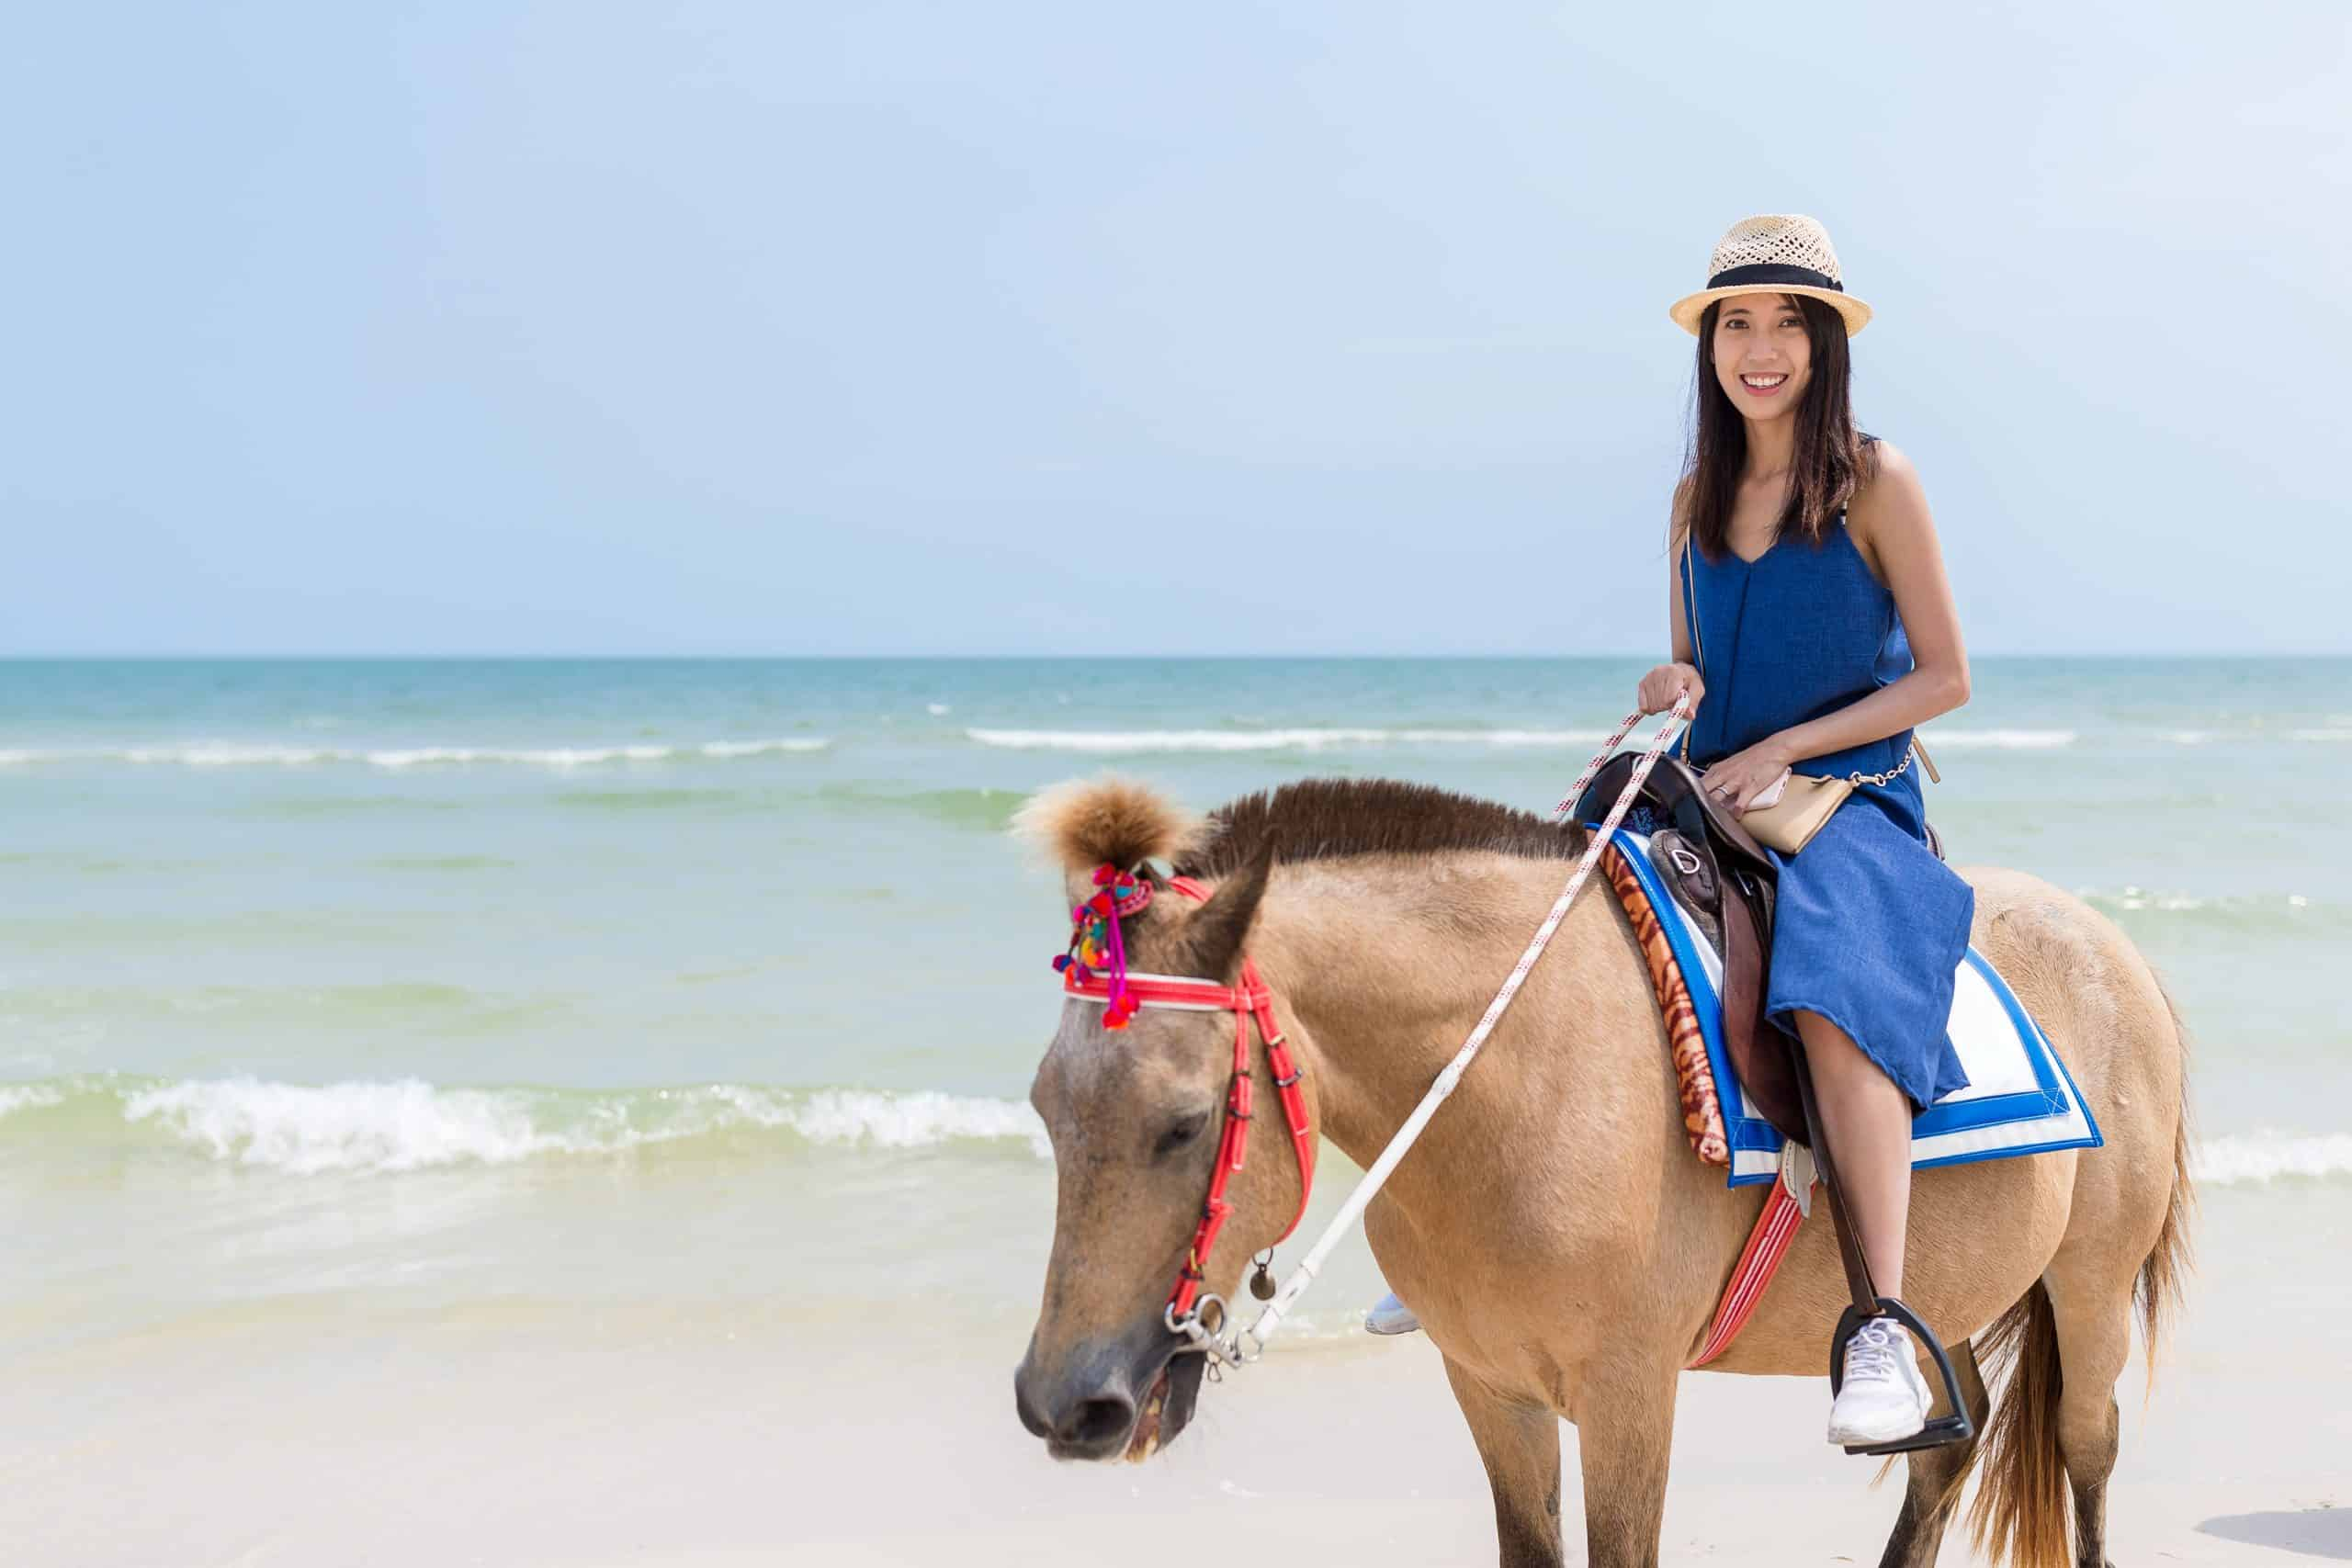 Woman riding horse in the sand beach